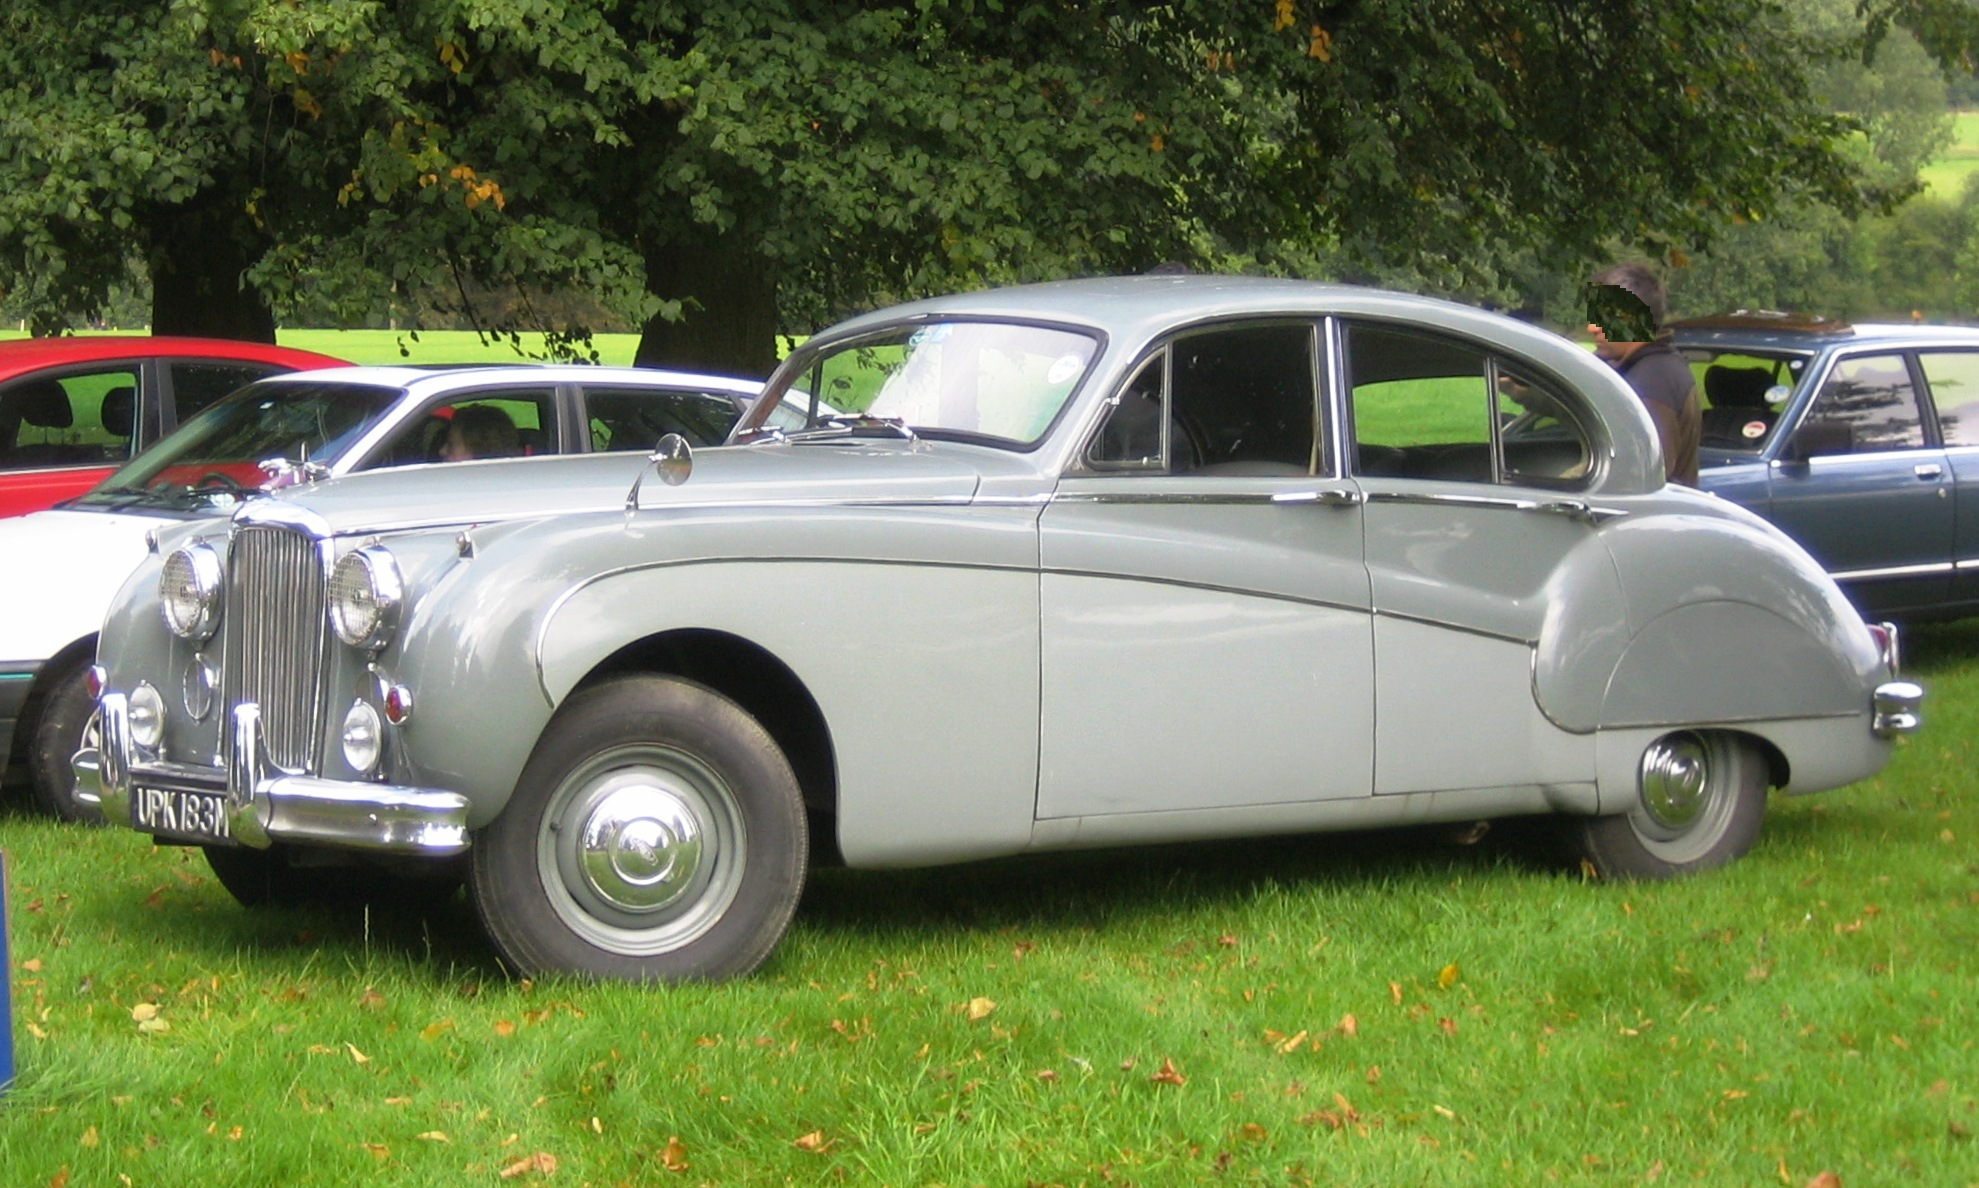 Jaguar_Mark_VIII_in_Hertfordshire.jpg